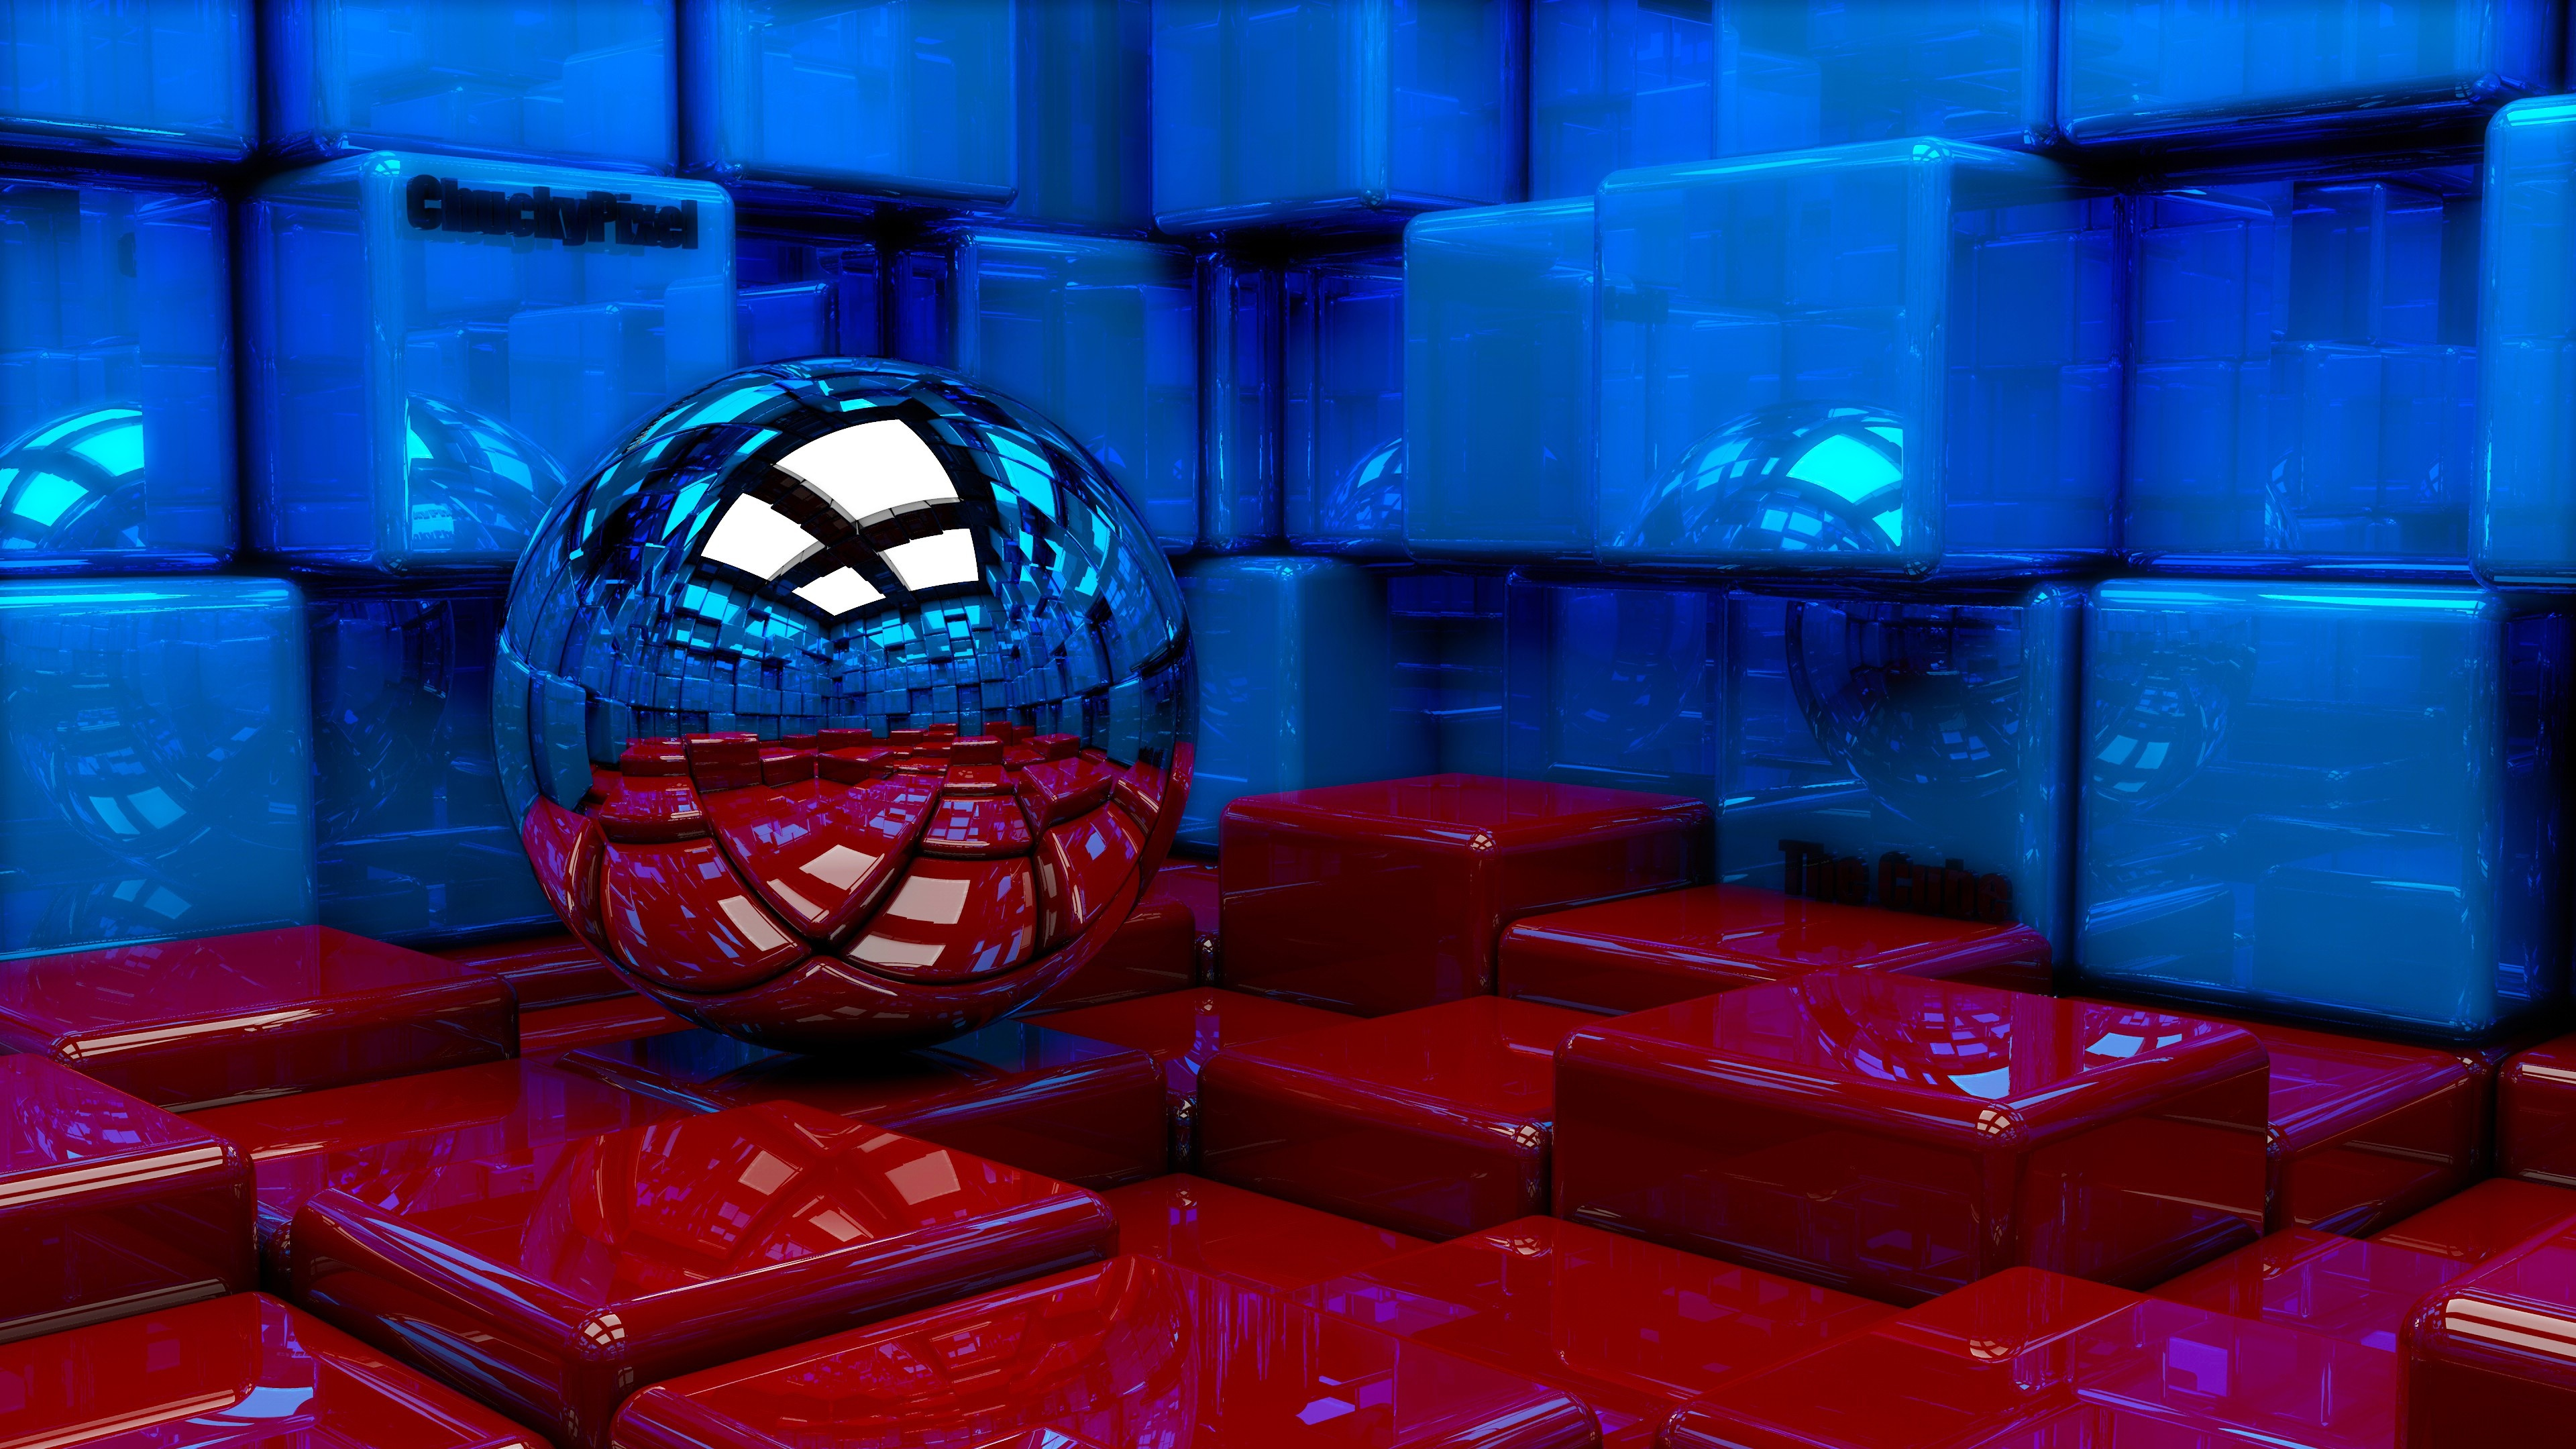 Ball Cubes Metal Blue Red Reflection 97785 3840 2160 Hd Wallpapers